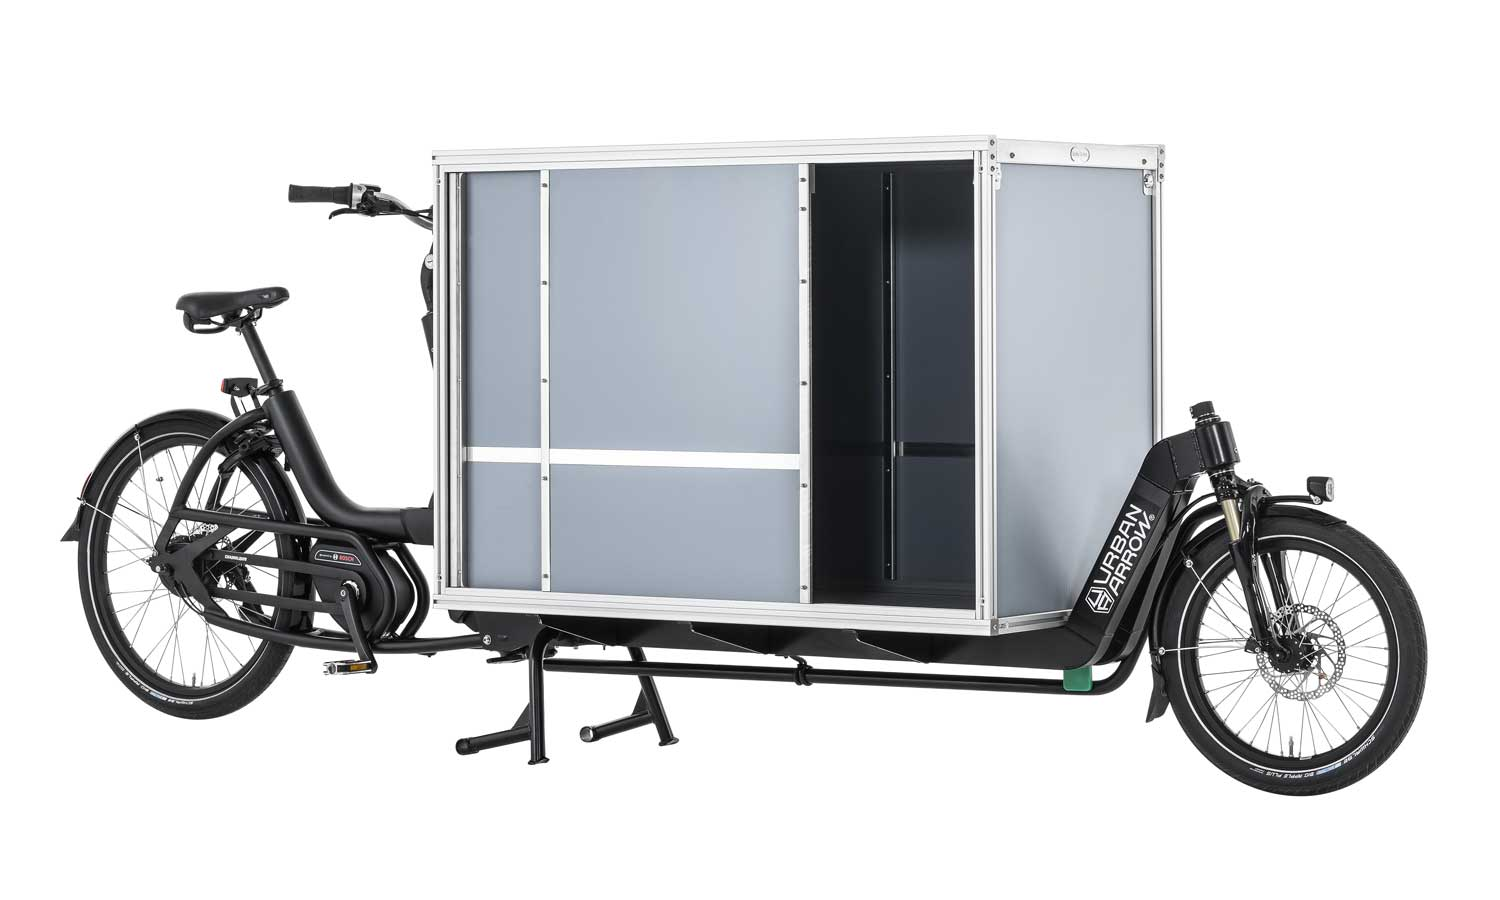 urbanarrow e flatbed xxl spezialvelos transportvelo velociped kriens luzern. Black Bedroom Furniture Sets. Home Design Ideas